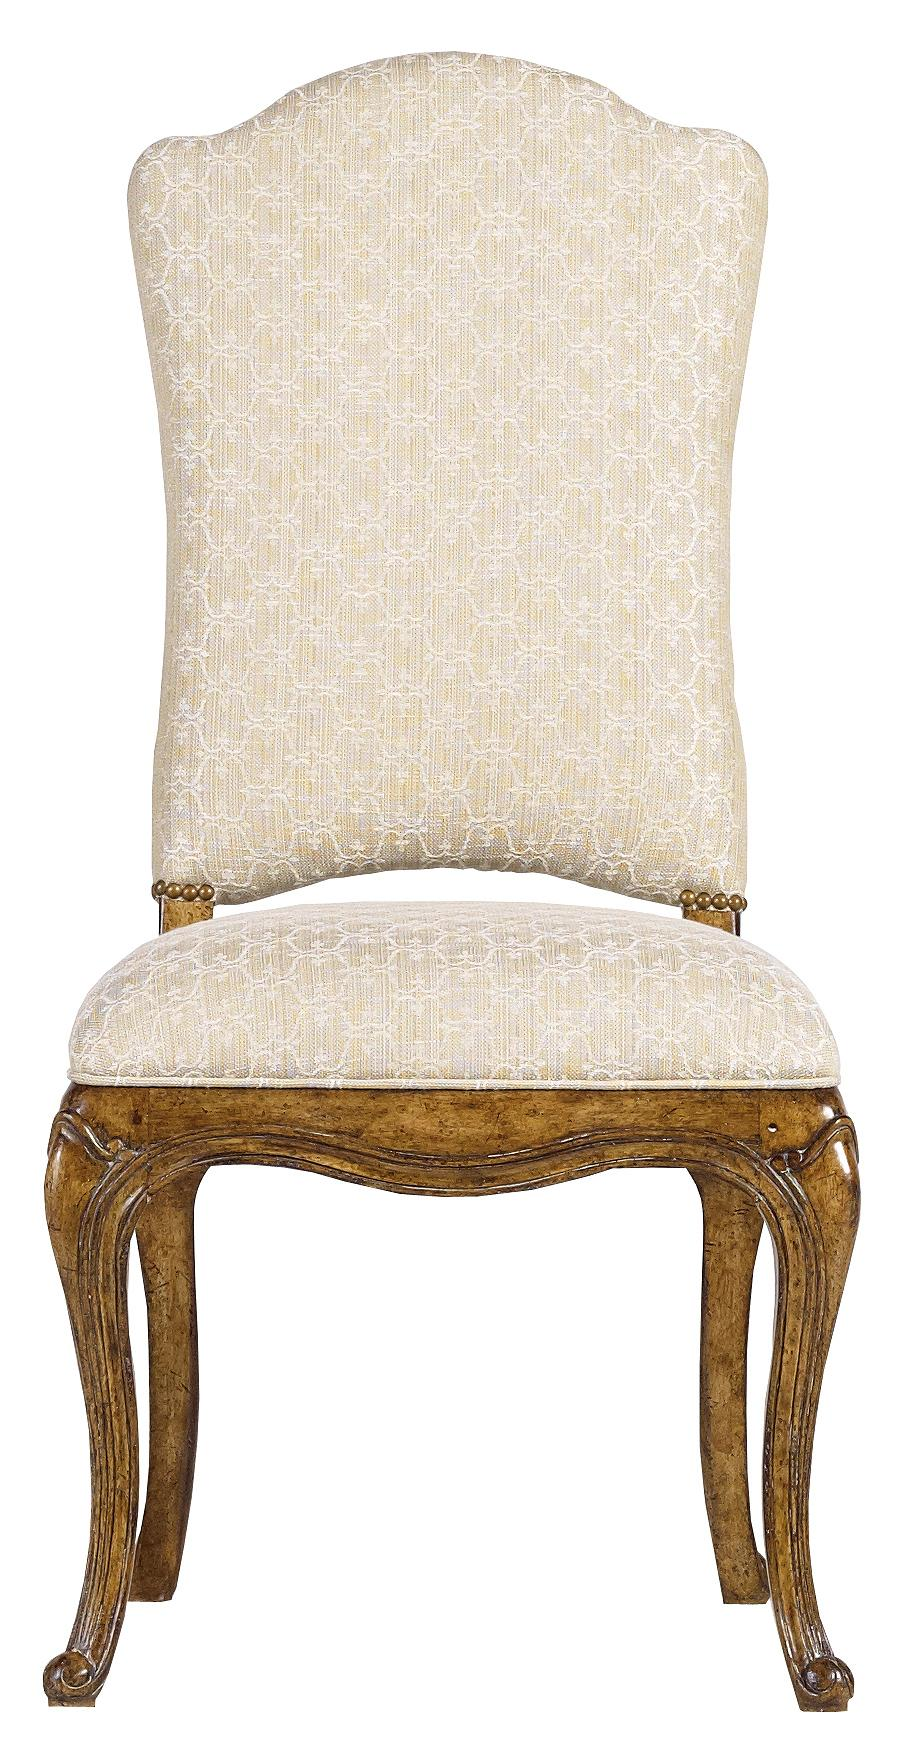 Stanley Furniture Arrondissement Volute Side Chair - Item Number: 222-61-65